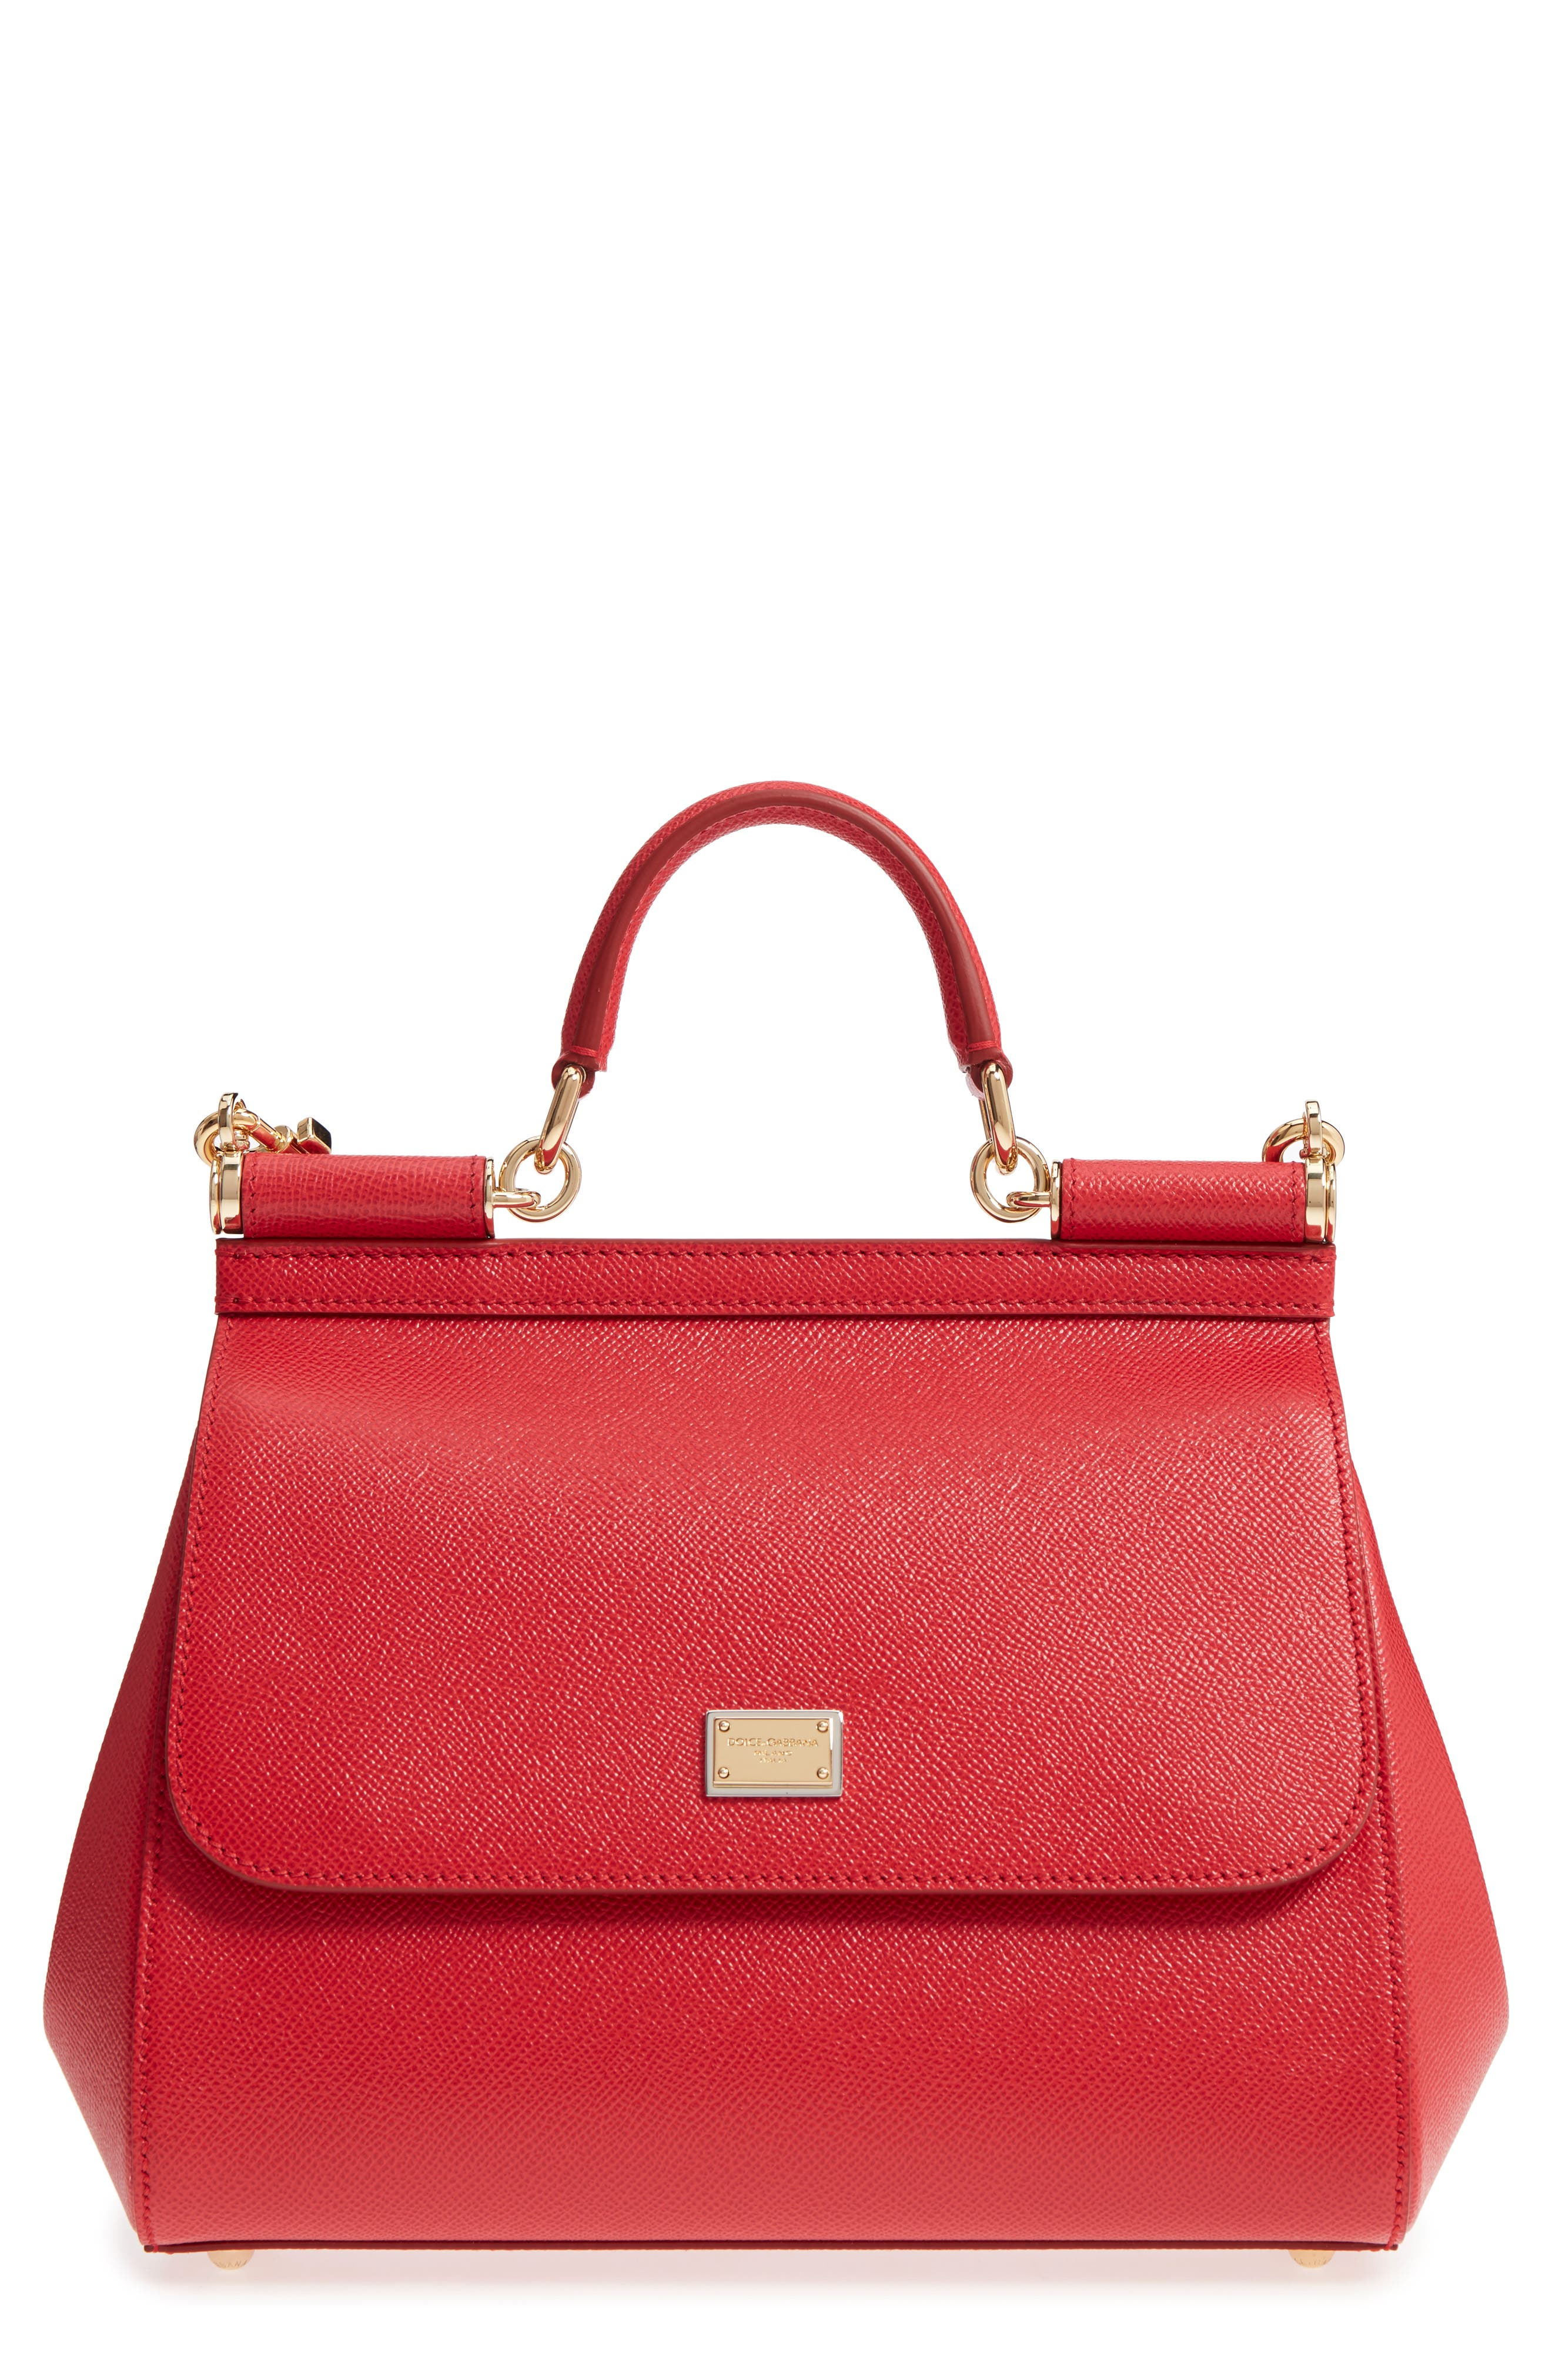 'Small Miss Sicily' Leather Satchel,                             Main thumbnail 1, color,                             Red